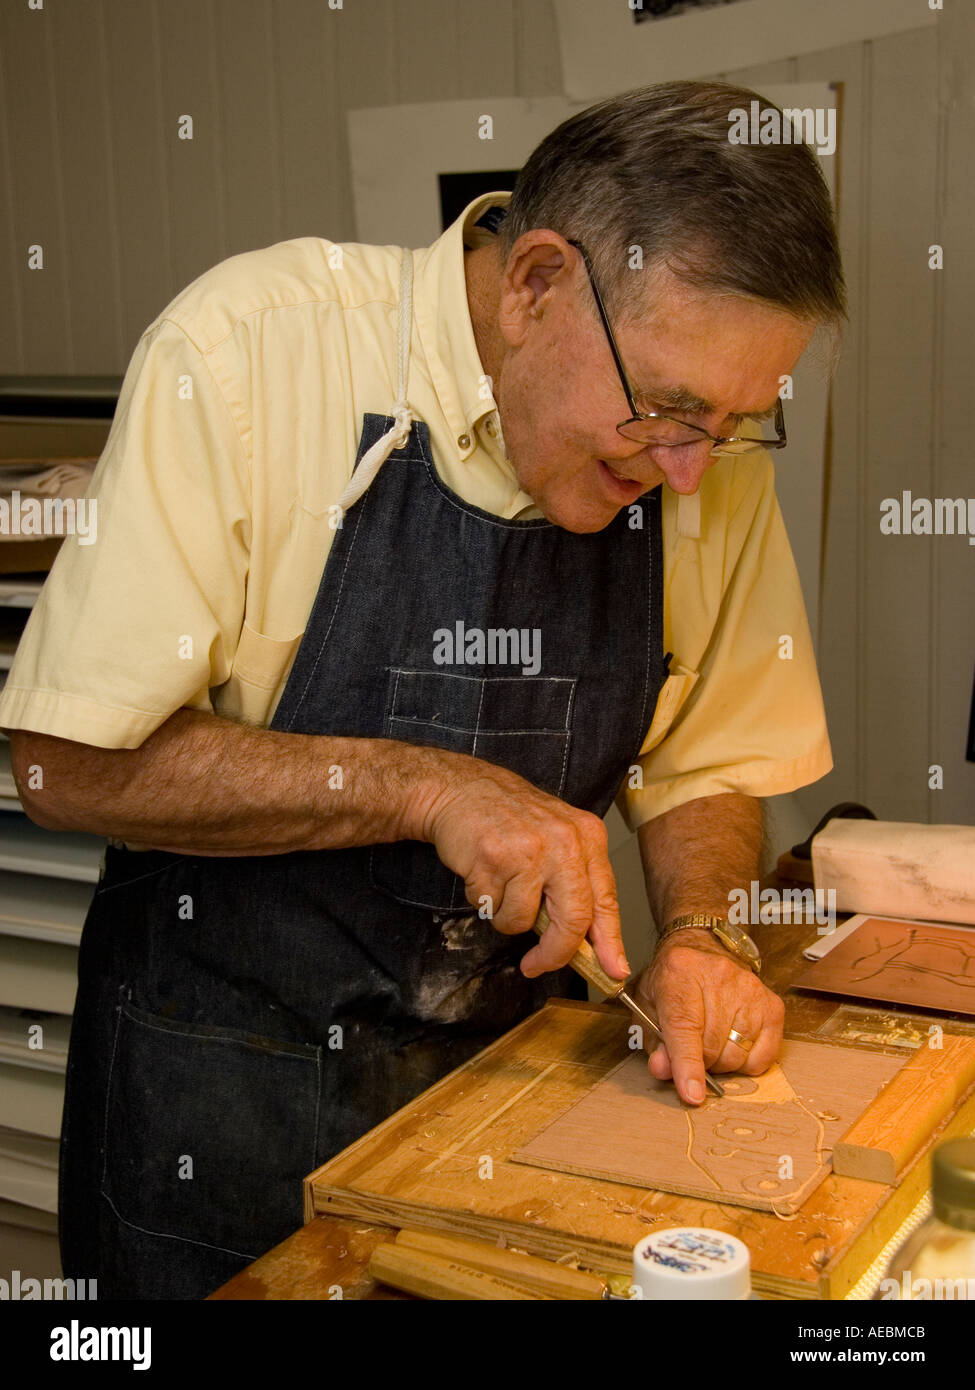 Professional Artist Creating a Woodcut, Printmaker works in his studio - Stock Image